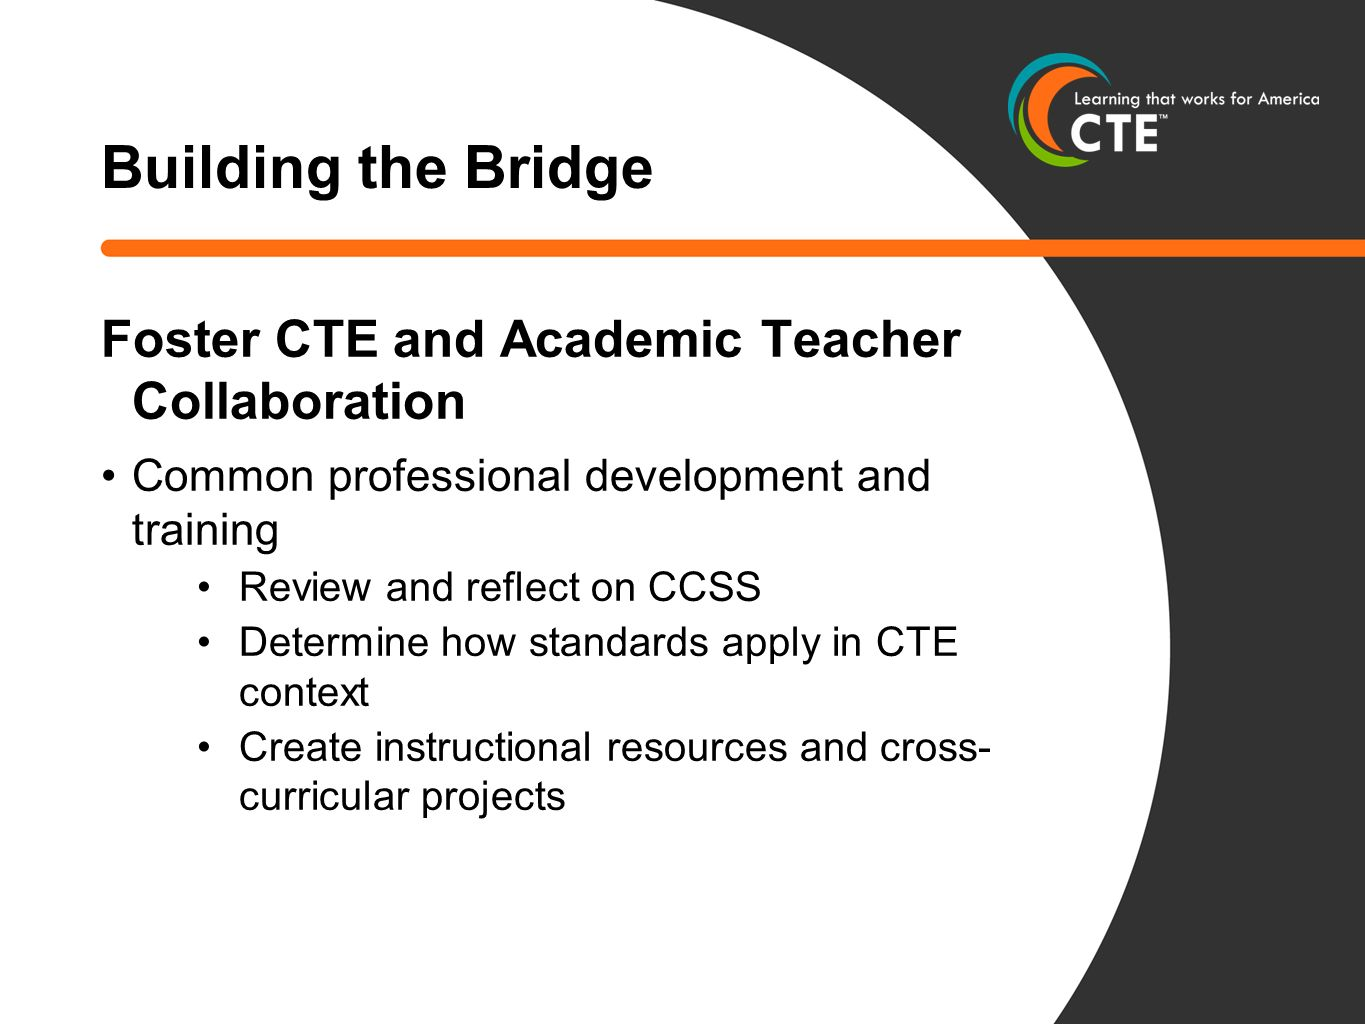 Building the Bridge Foster CTE and Academic Teacher Collaboration Common professional development and training Review and reflect on CCSS Determine how standards apply in CTE context Create instructional resources and cross- curricular projects